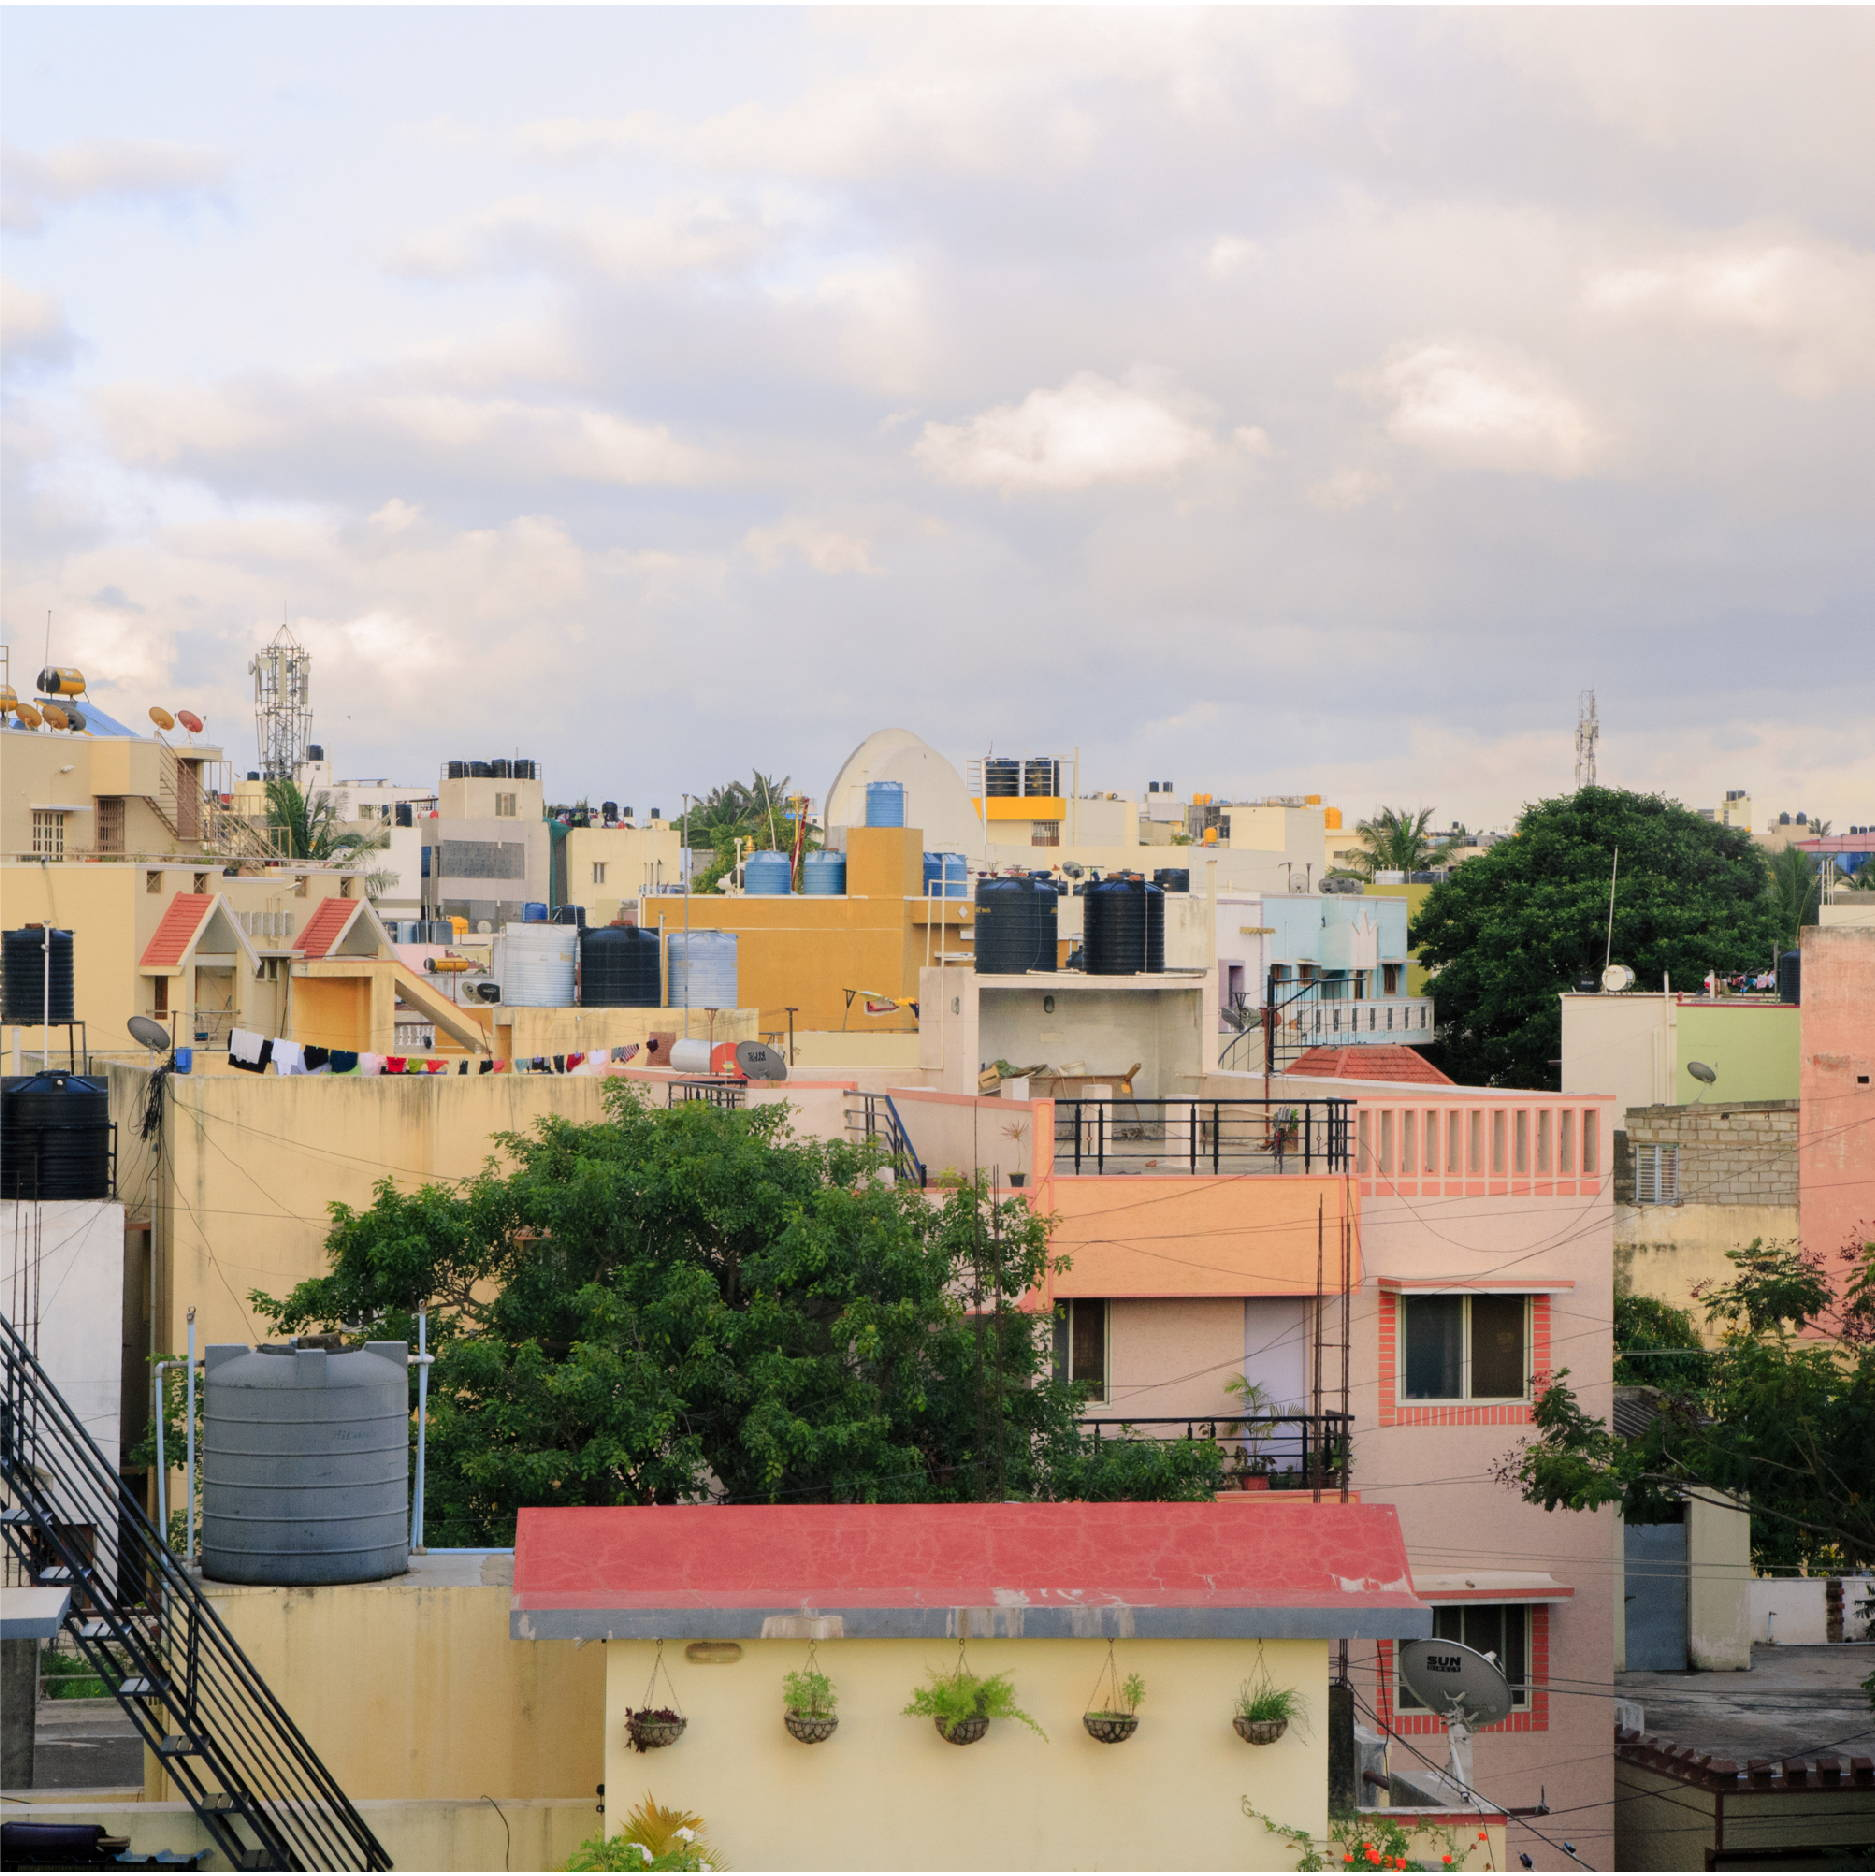 The sun sets across a crowded and colorful Indian neighborhood in Bangalore India.